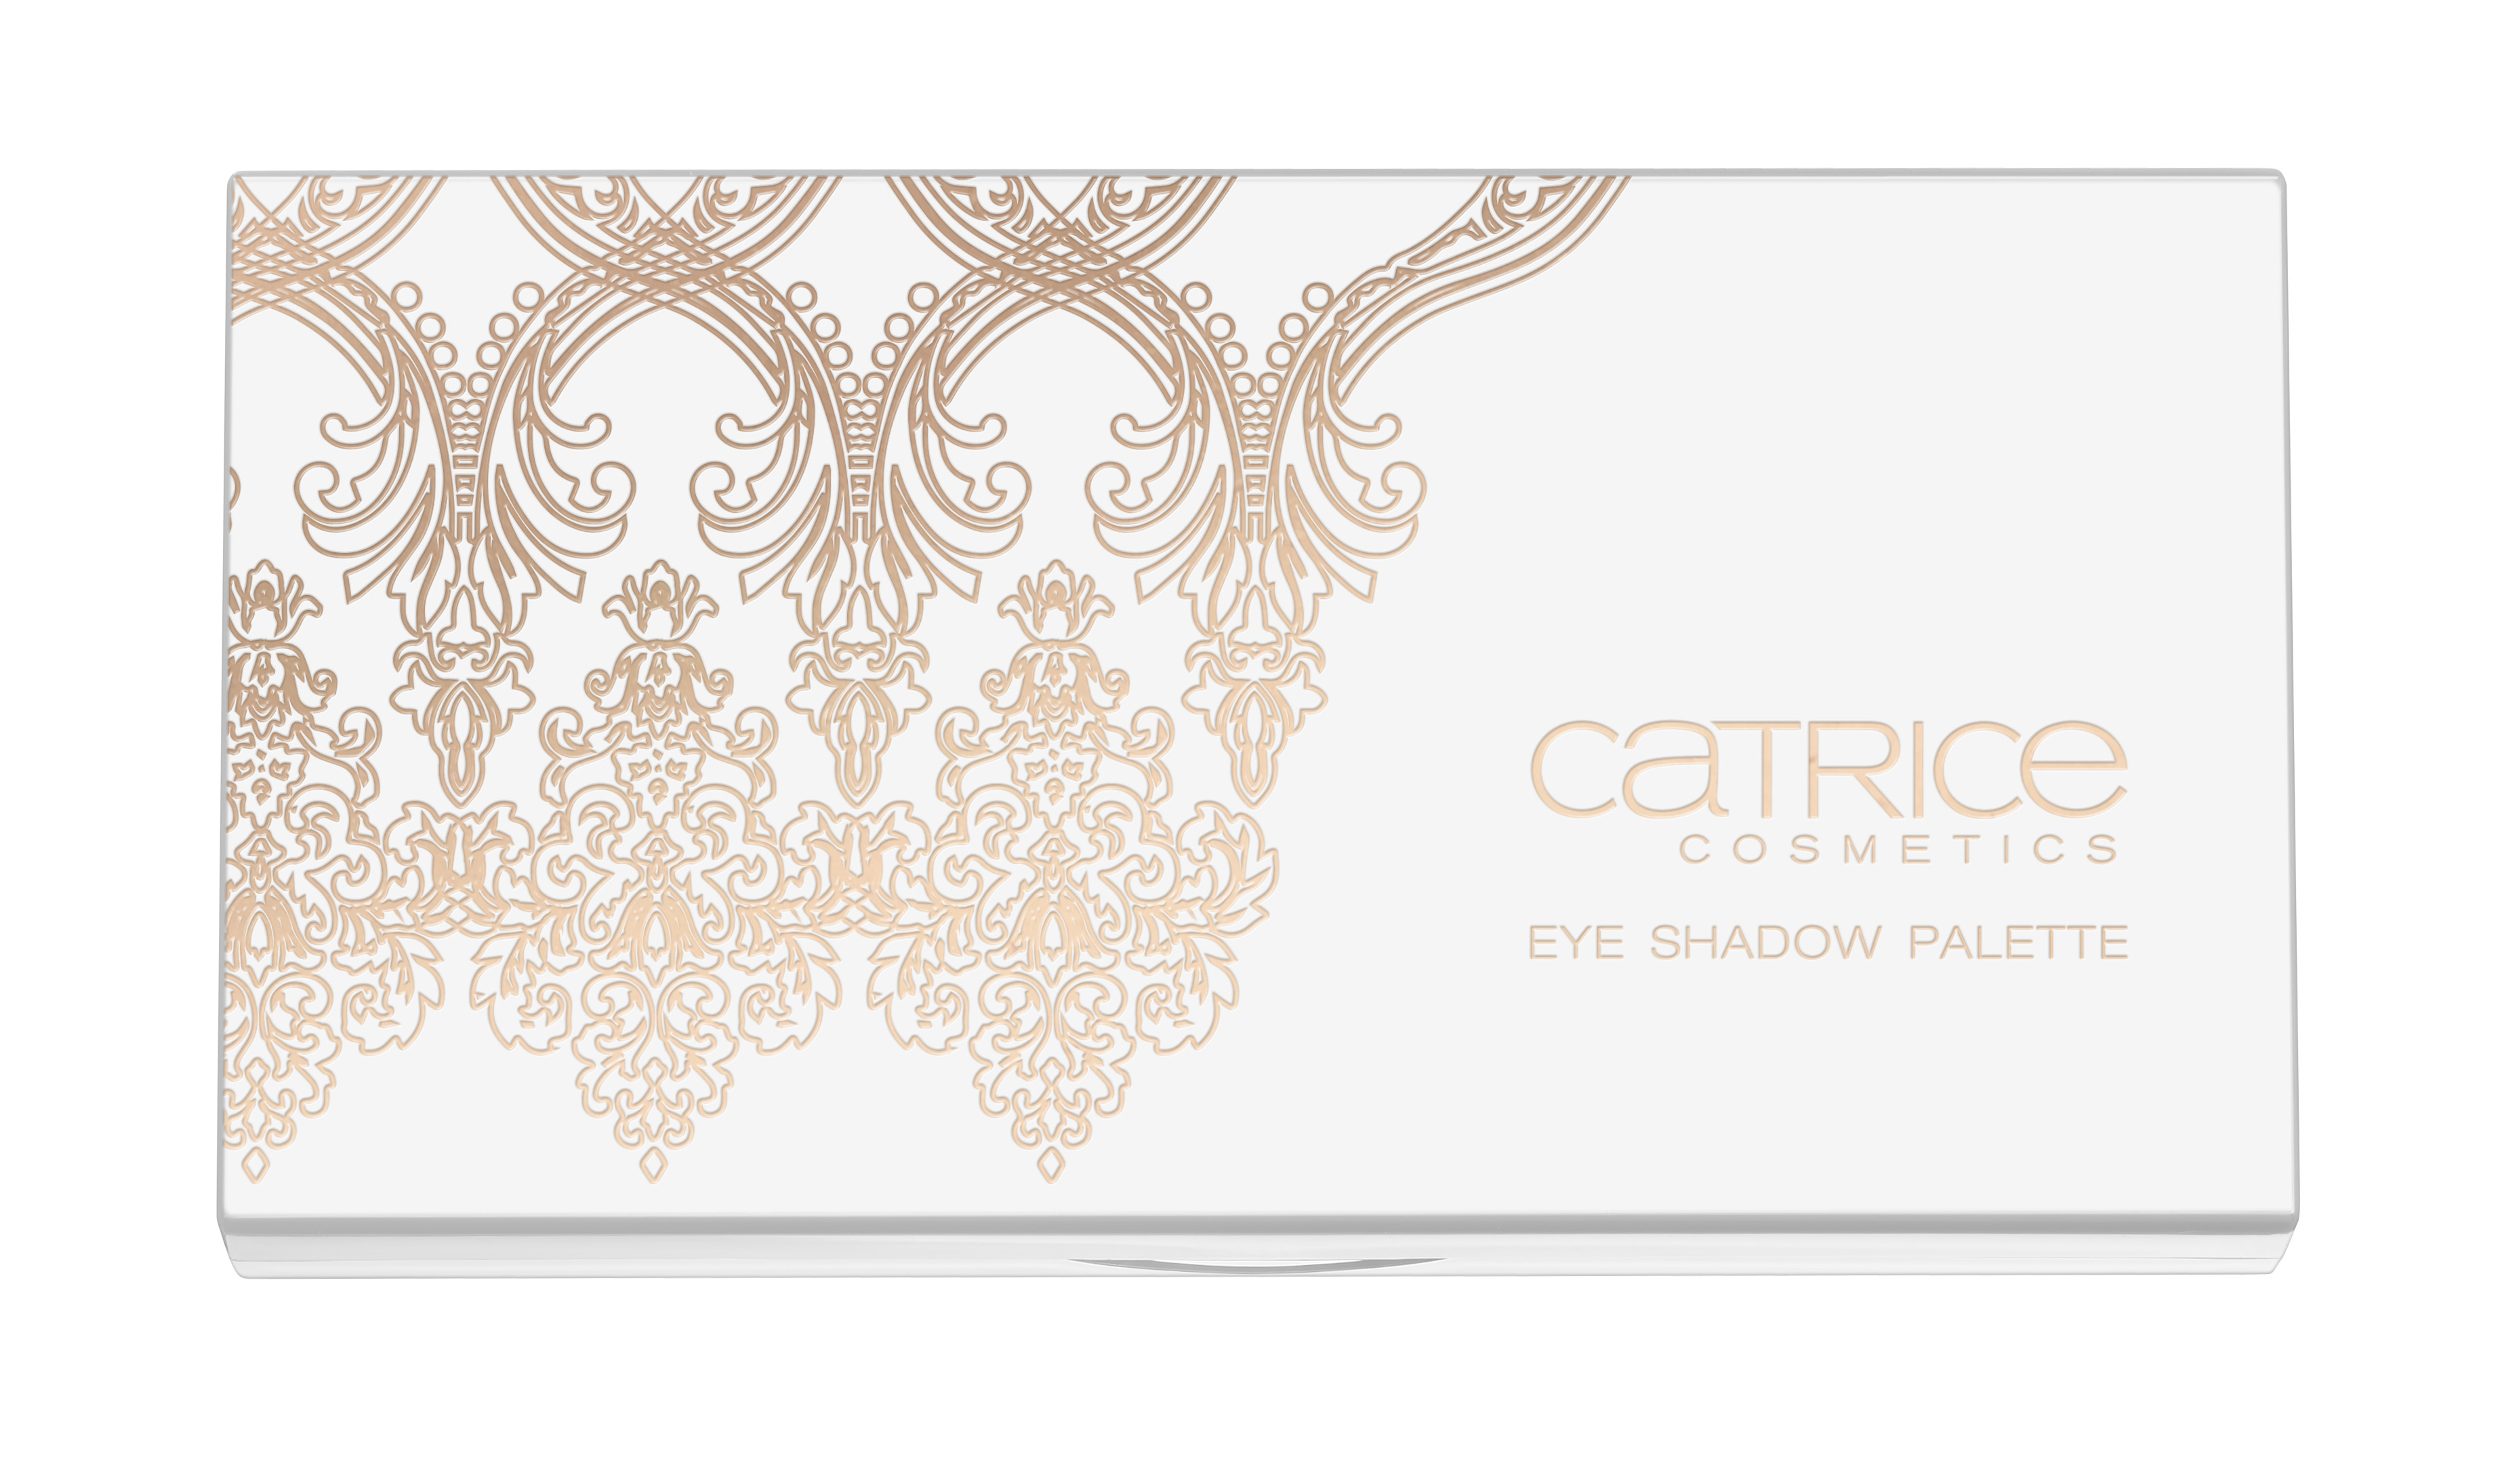 catr_le_victorian_eyeshadowpalette_closed_1470225272.jpg